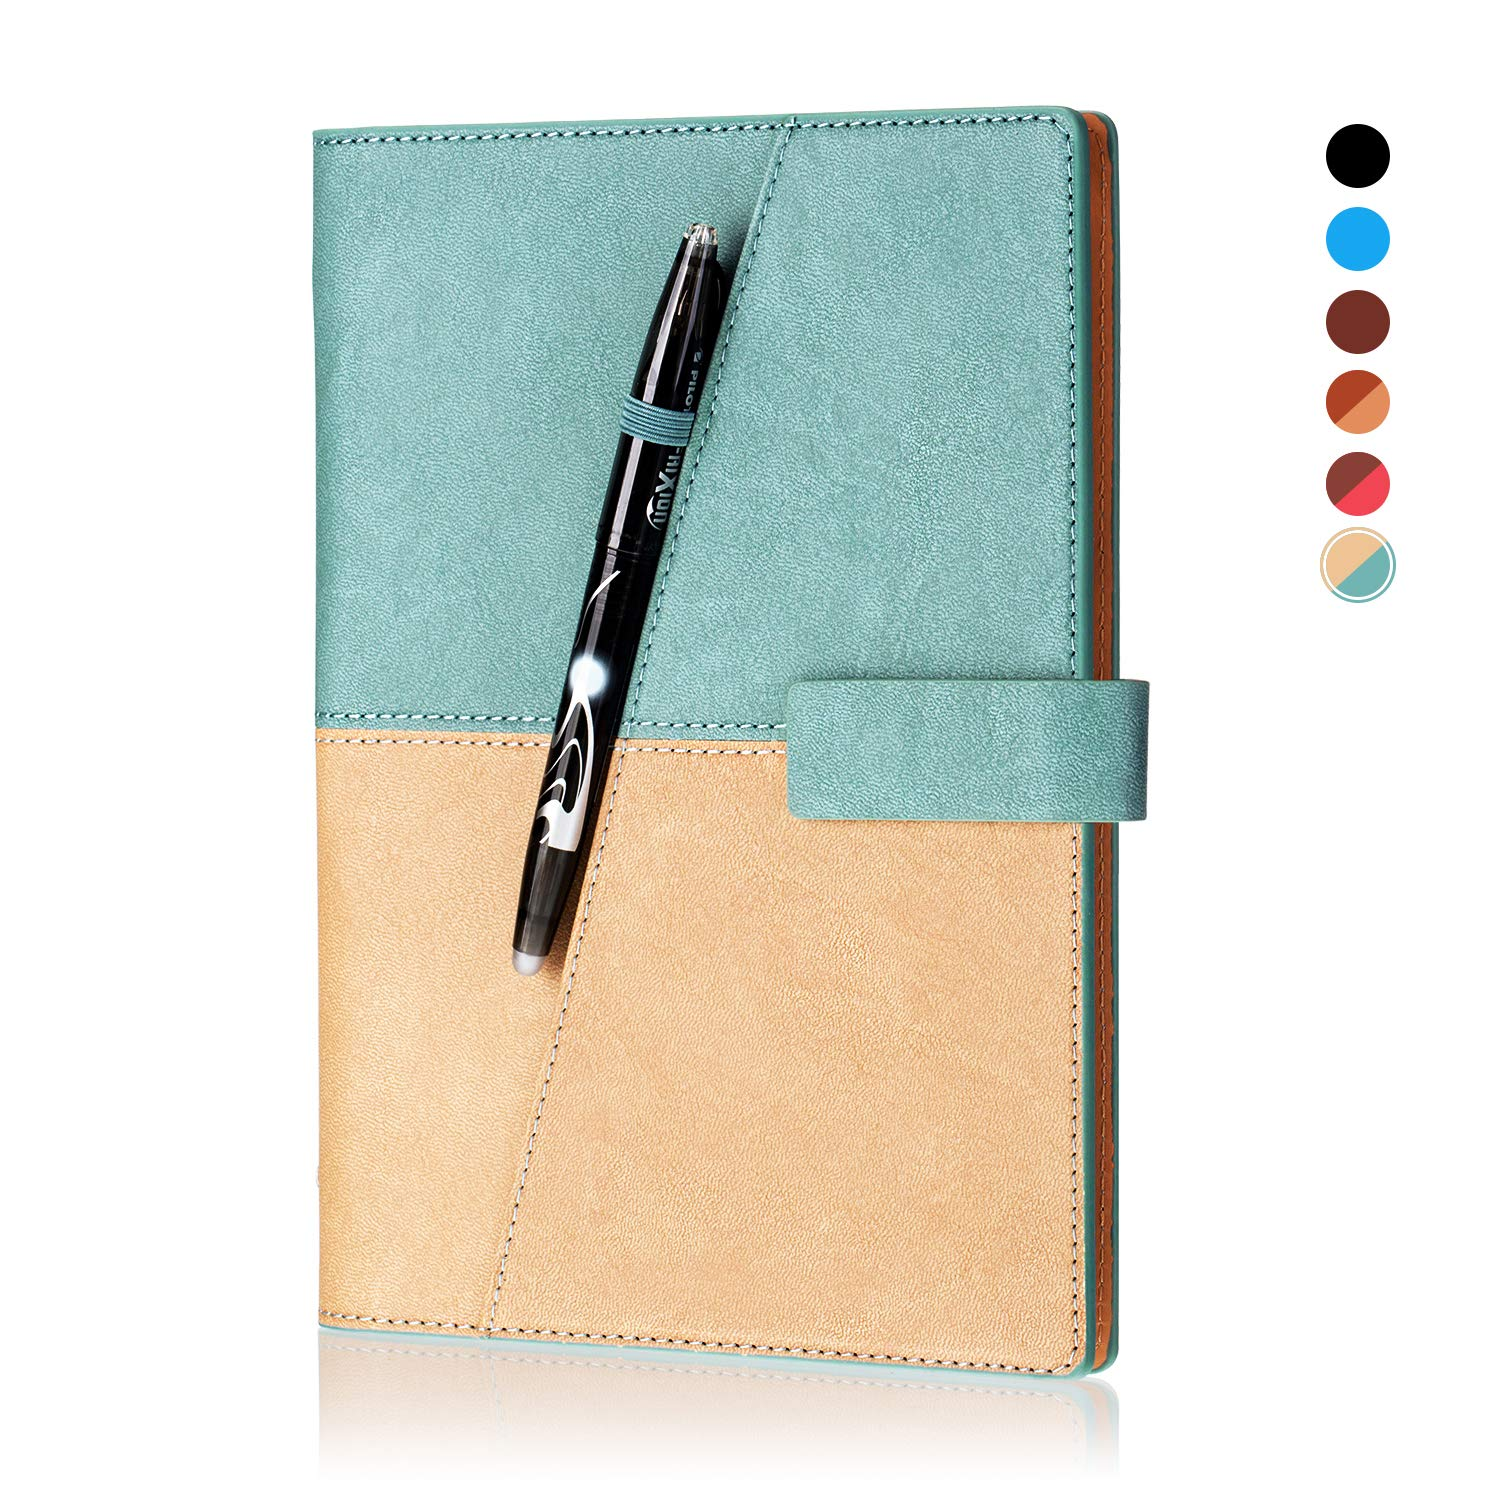 KYSTORE A5 Reusable Smart Erasable Leather Notebook, Notebooks and Journals Hardcover Writing Note Book Executive Notebook Heat Erase Paper Wide Ruled Blank 108 Pages with Erasable Pen [Light Blue] by KYSTORE